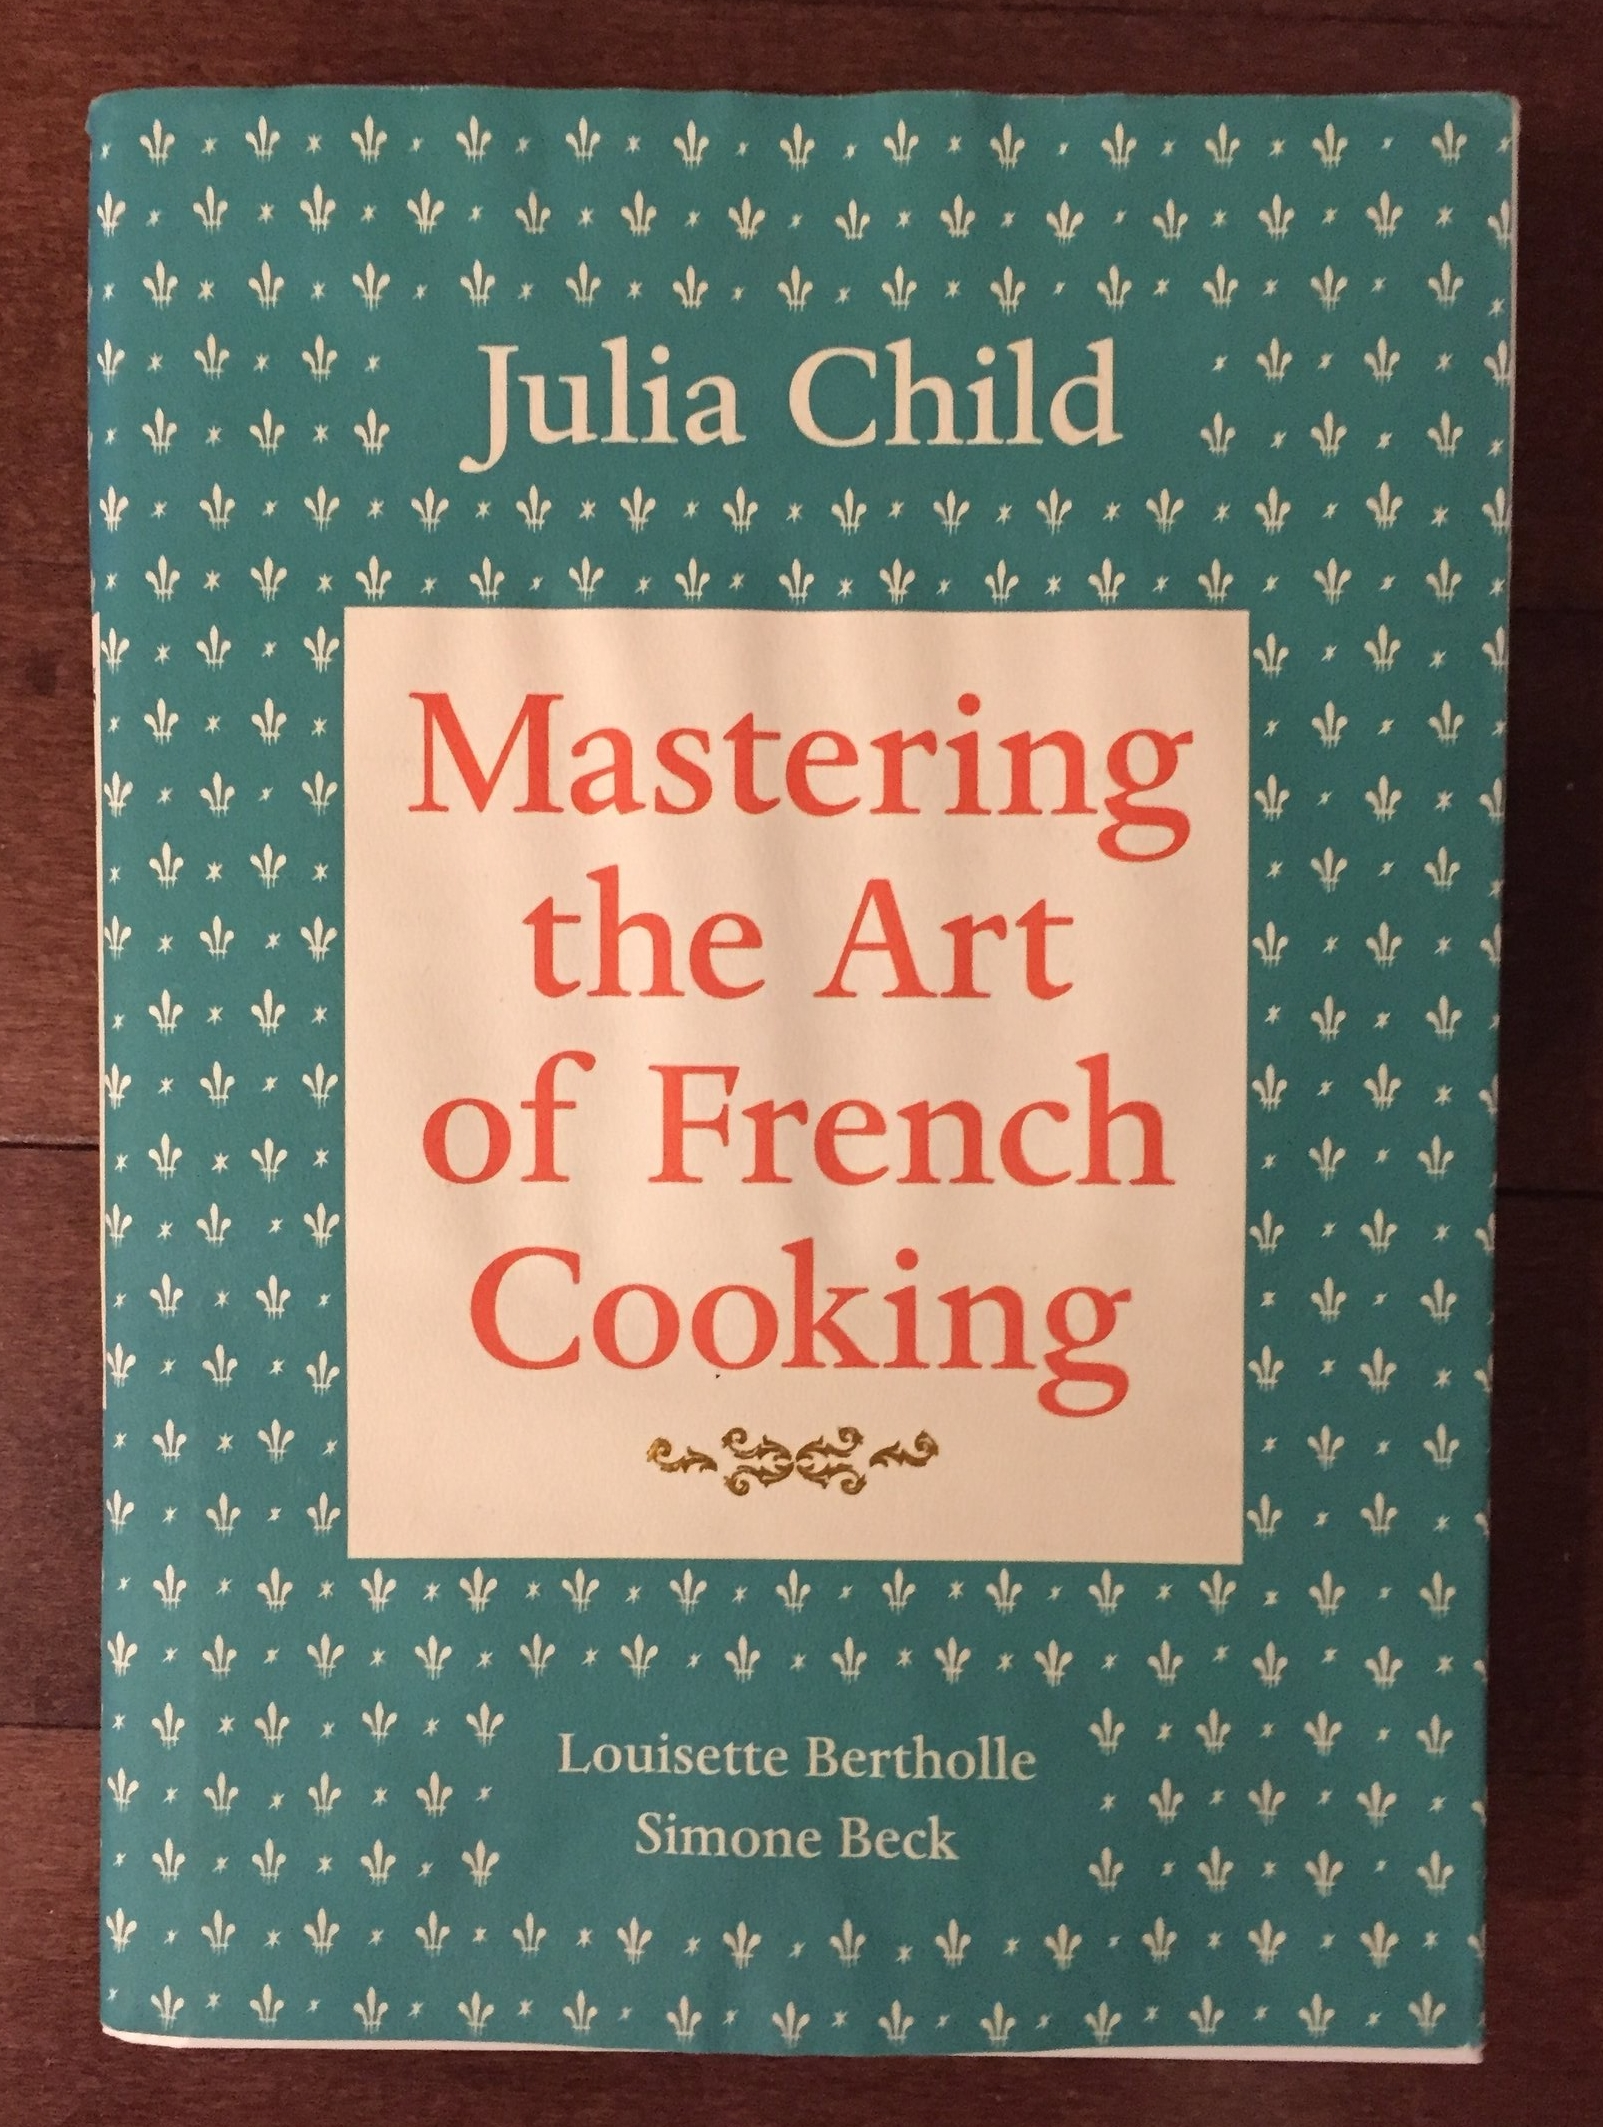 Mastering the Art of French Cooking. Yes of course it made the list. It's the famous Julia Child's book, also written by Louisette Bertholle and Simone Beck. This book was intended to introduce American's to French Cooking. With such recipes like beef bourguignon, bouillabaisse, and cassoulet. I definitely watched the movie Julie and Julia and then bought this book.